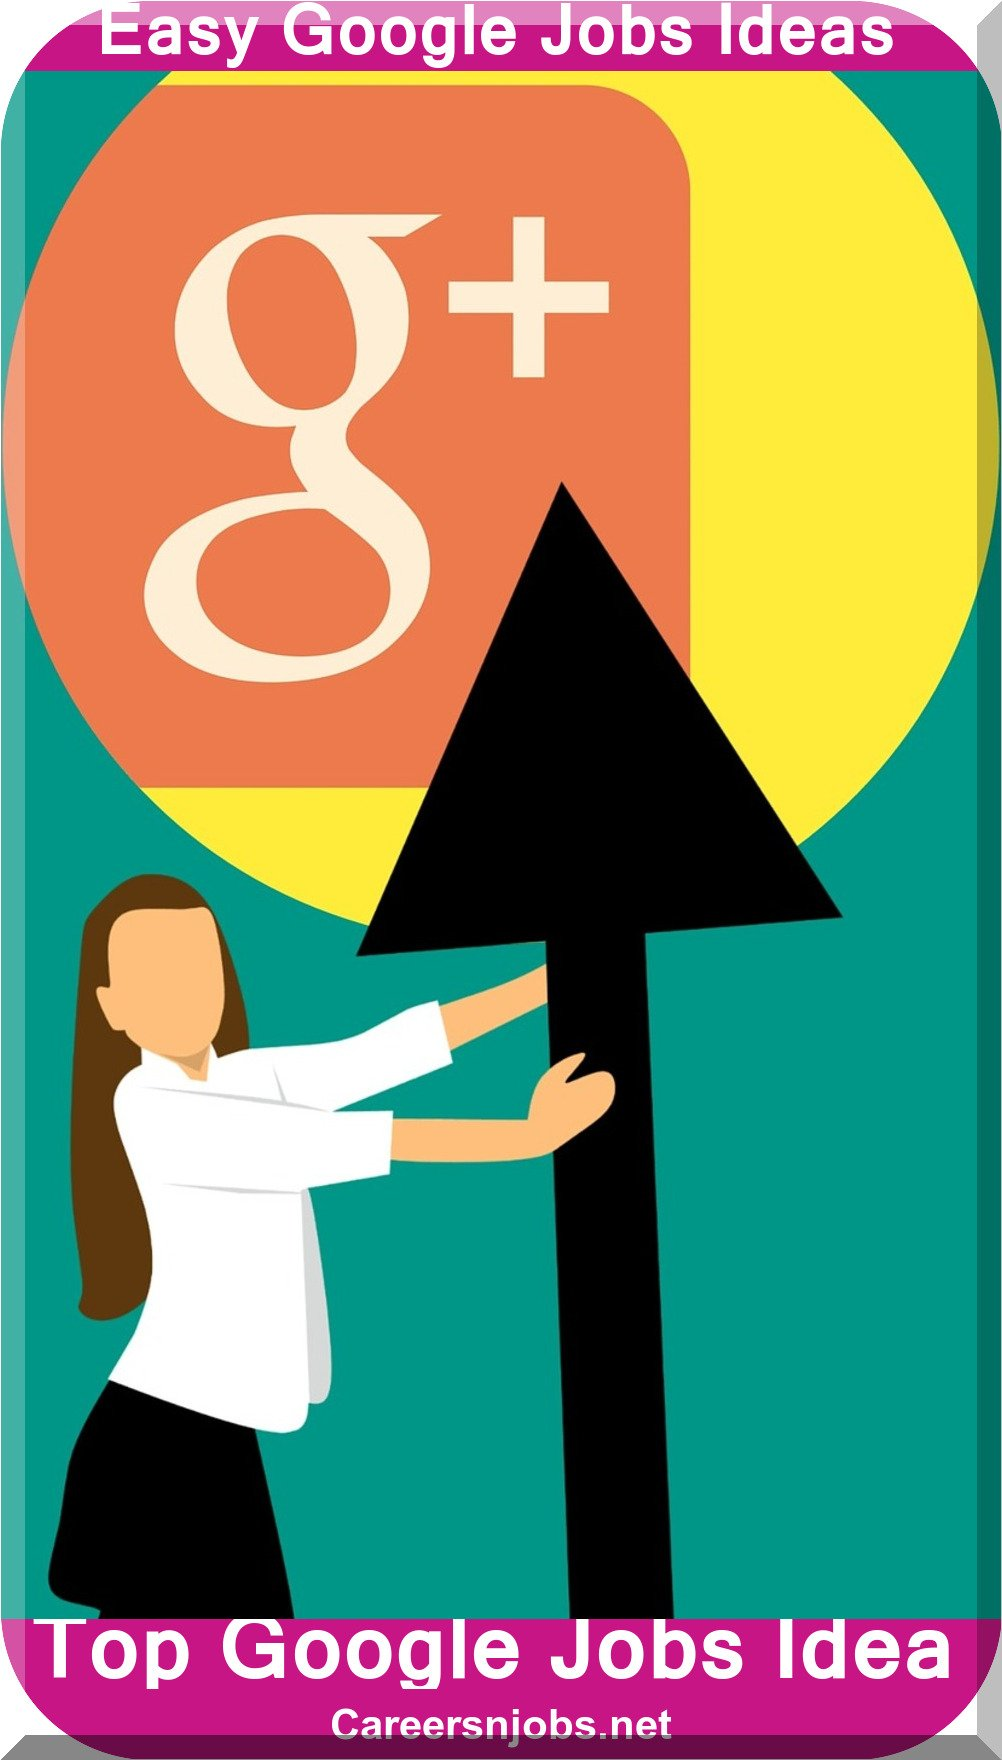 How To Get The Most Out Of Google's Job Posting Guidelines